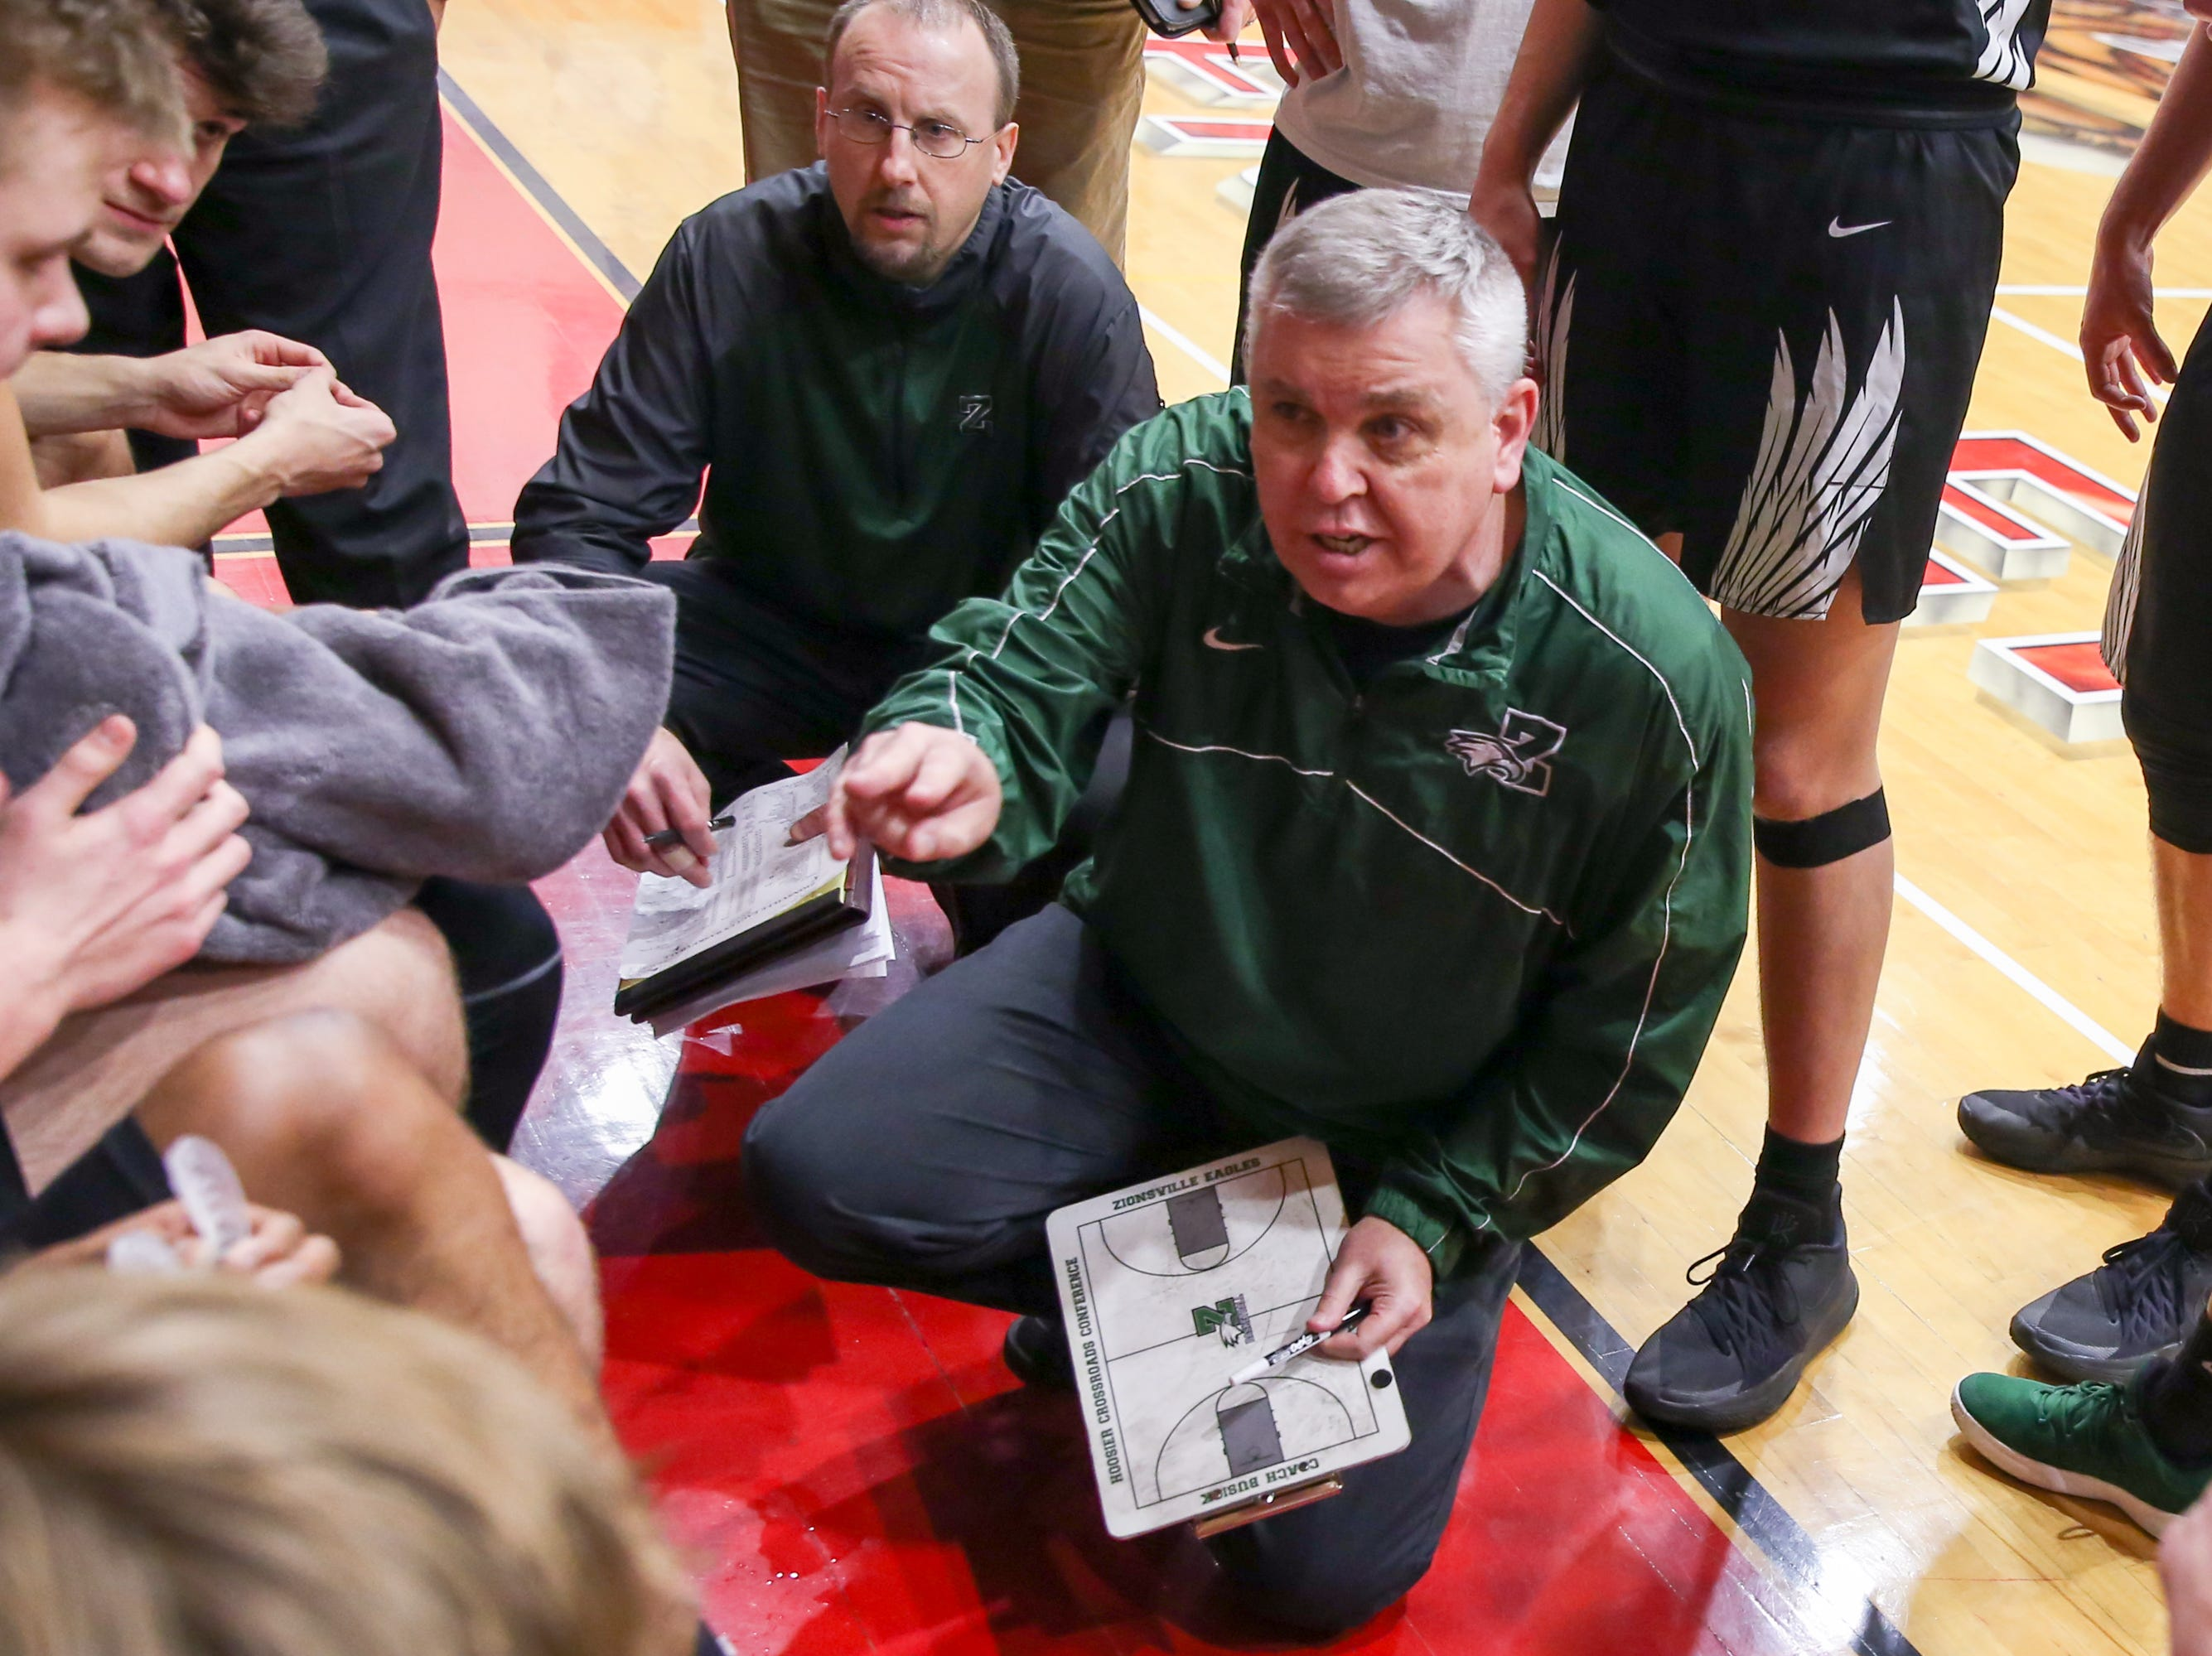 Zionsville High Coach Shaun Busick laid out plans for the 4th quarter play during the second half of Zionsville vs. Fishers high school boys varsity basketball game held at Fishers High School, February 15, 2019.